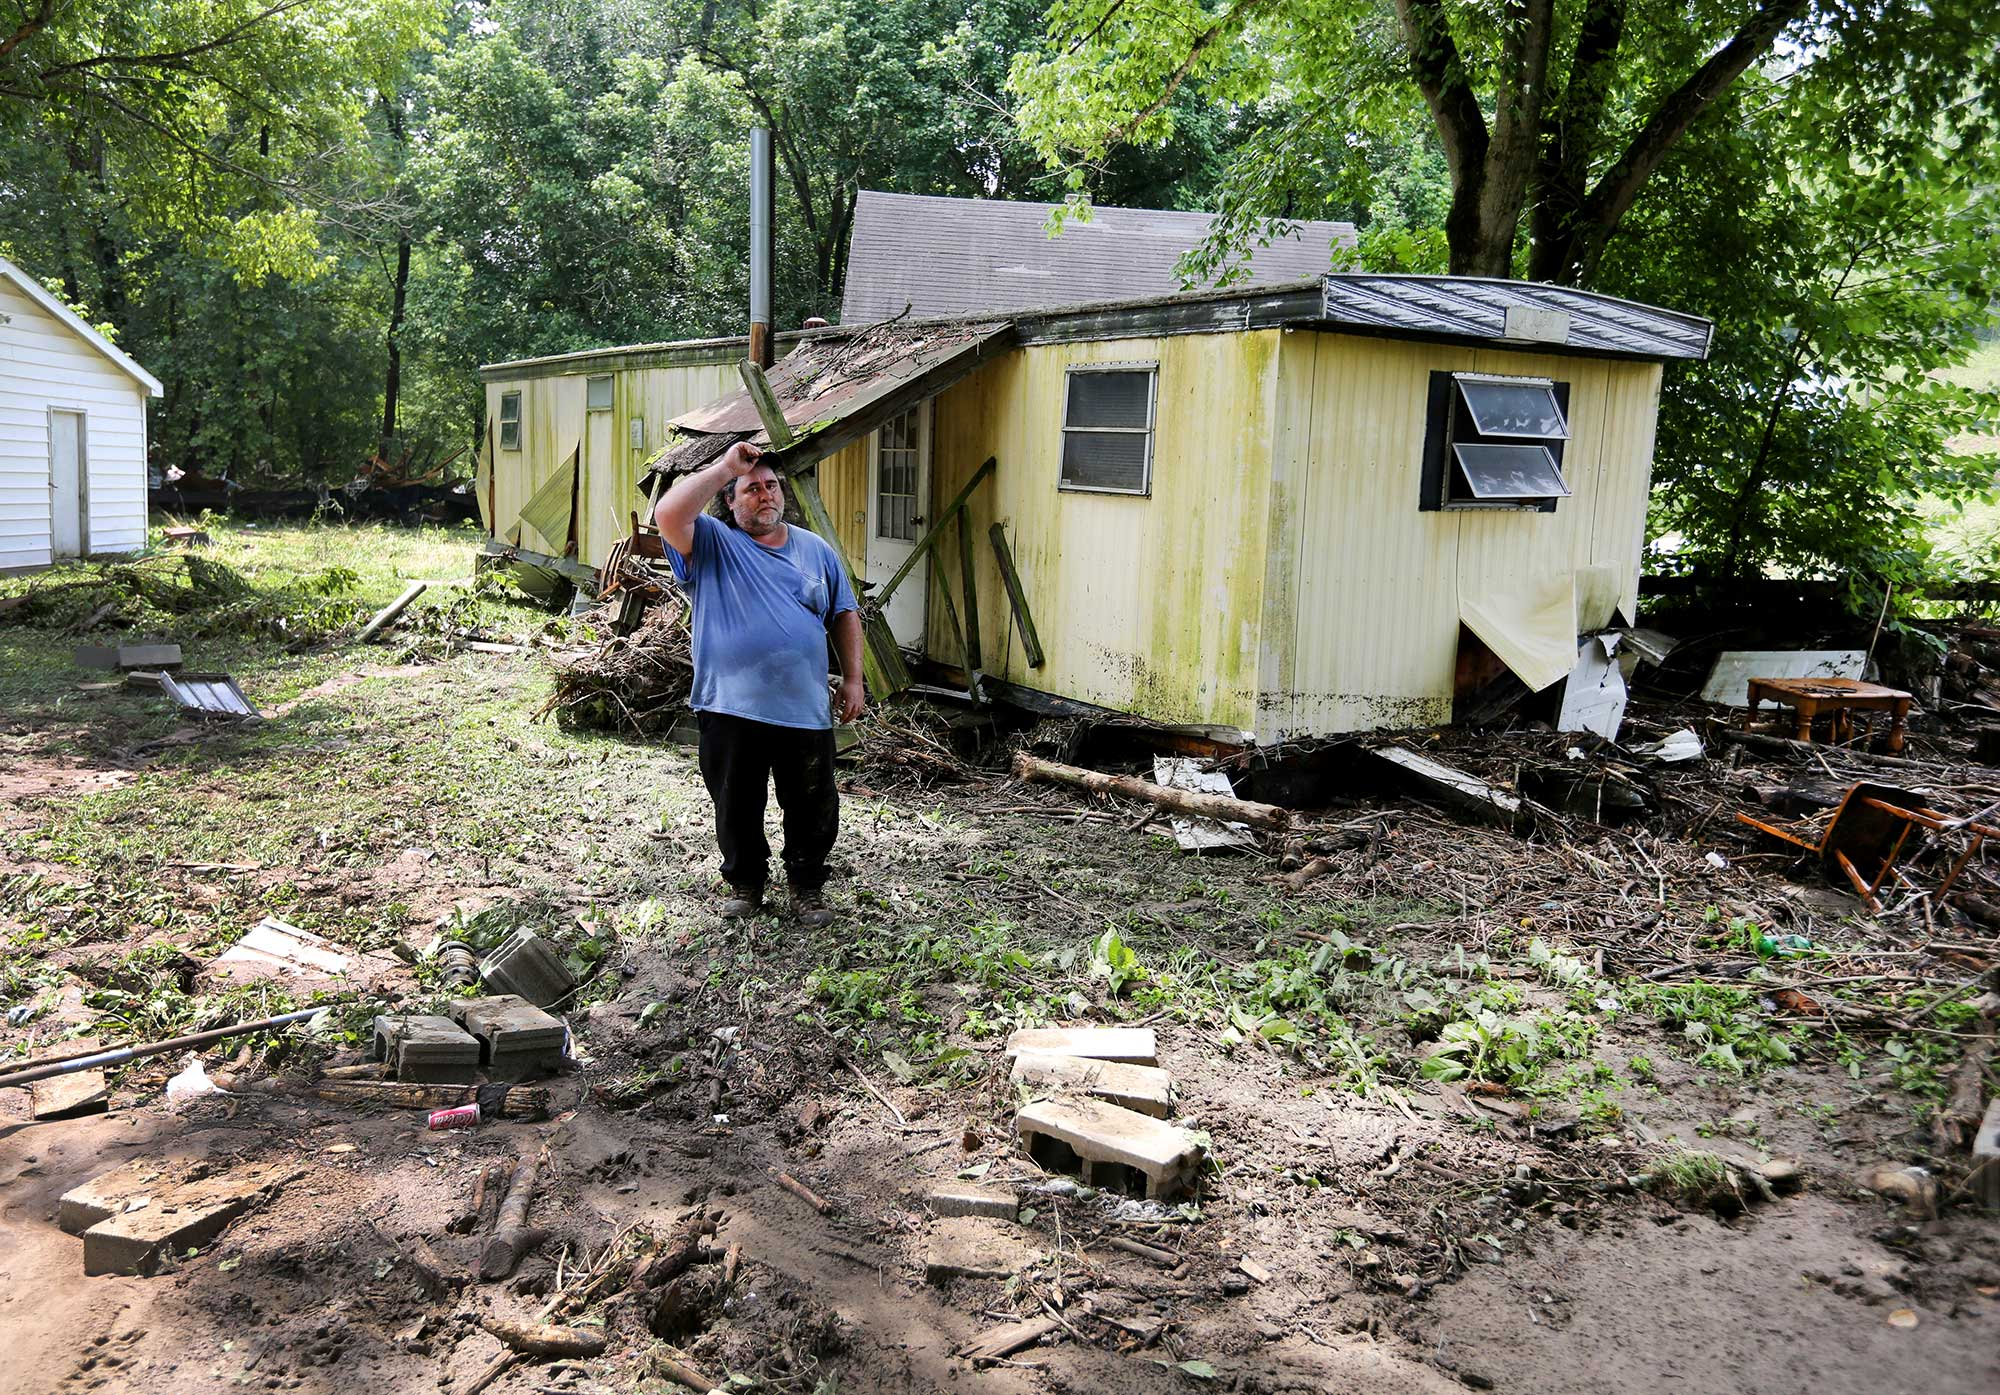 Jeff Downing walks around his property after severe flooding in Ripley, Ohio on July 19, 2015.